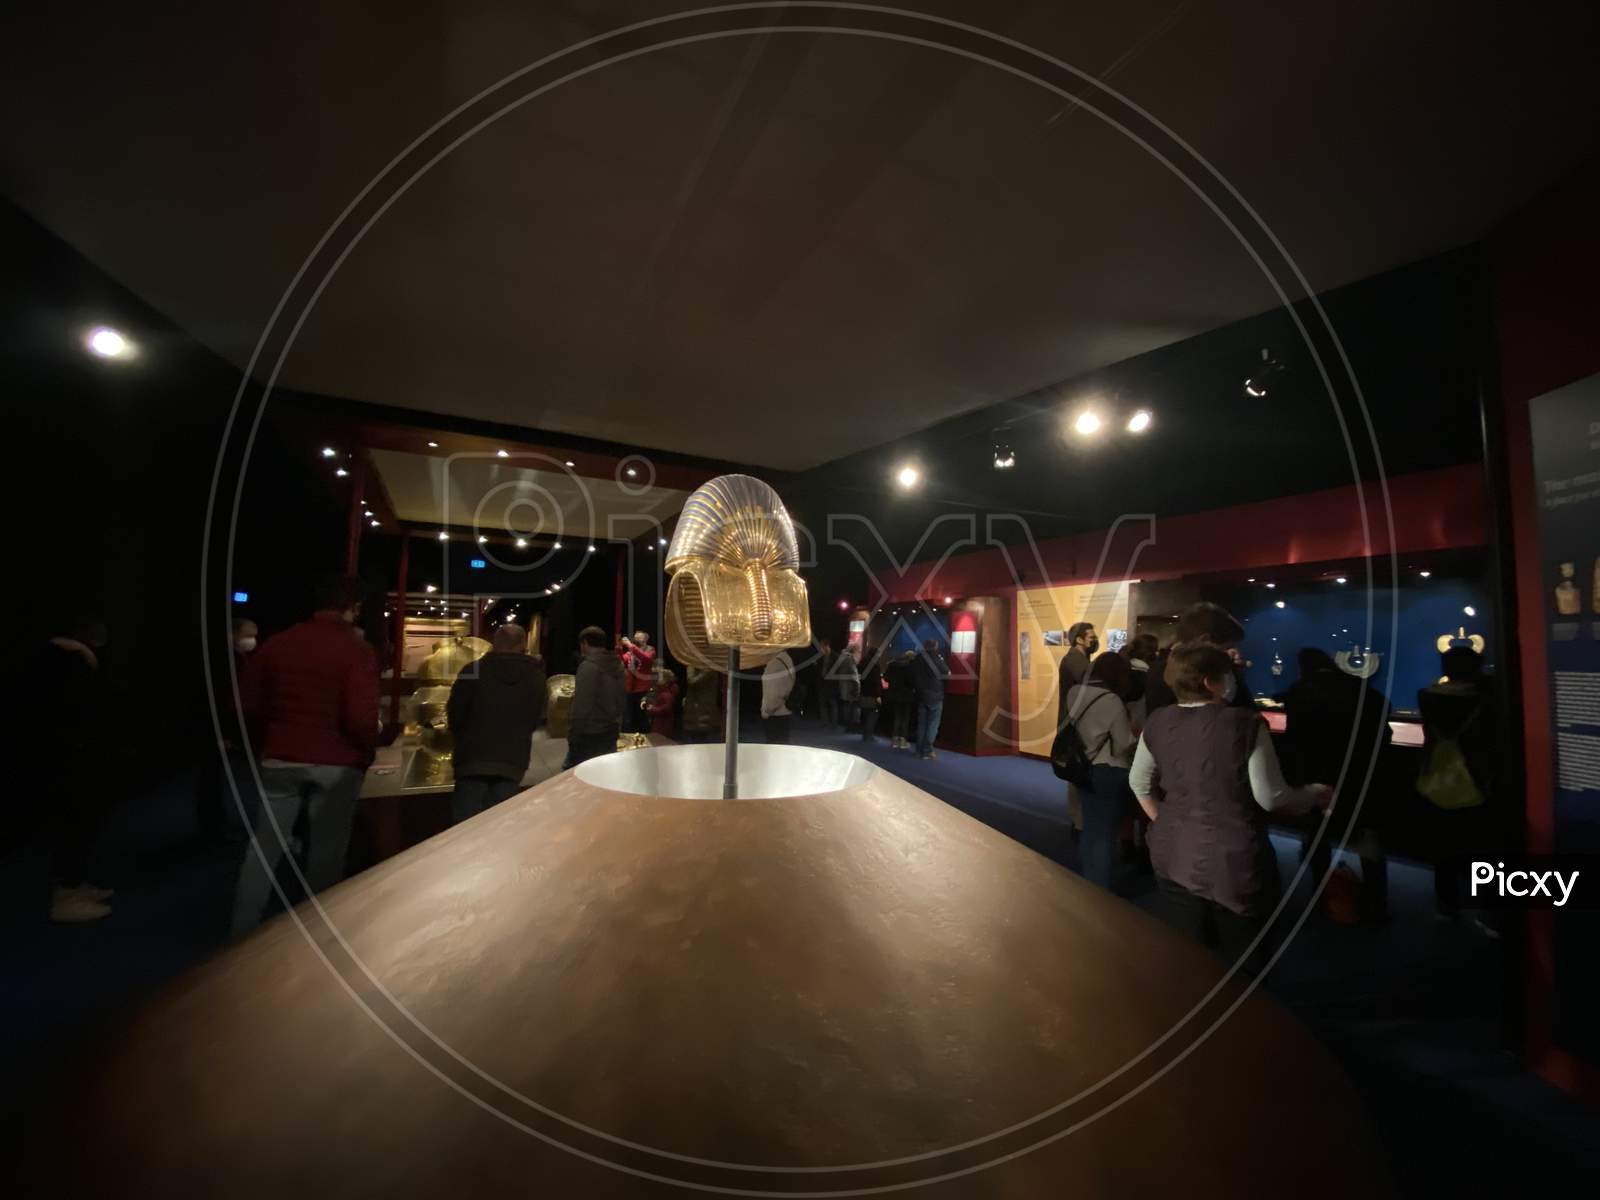 Exhibition Of Tutankhamun In Zurich With Spectators During Pandemic Time. Tomb And Treasures With Gold Mask And Replicas From Egypt Pharaoh. 14.03.2021 - Oerlikon, Switzerland.